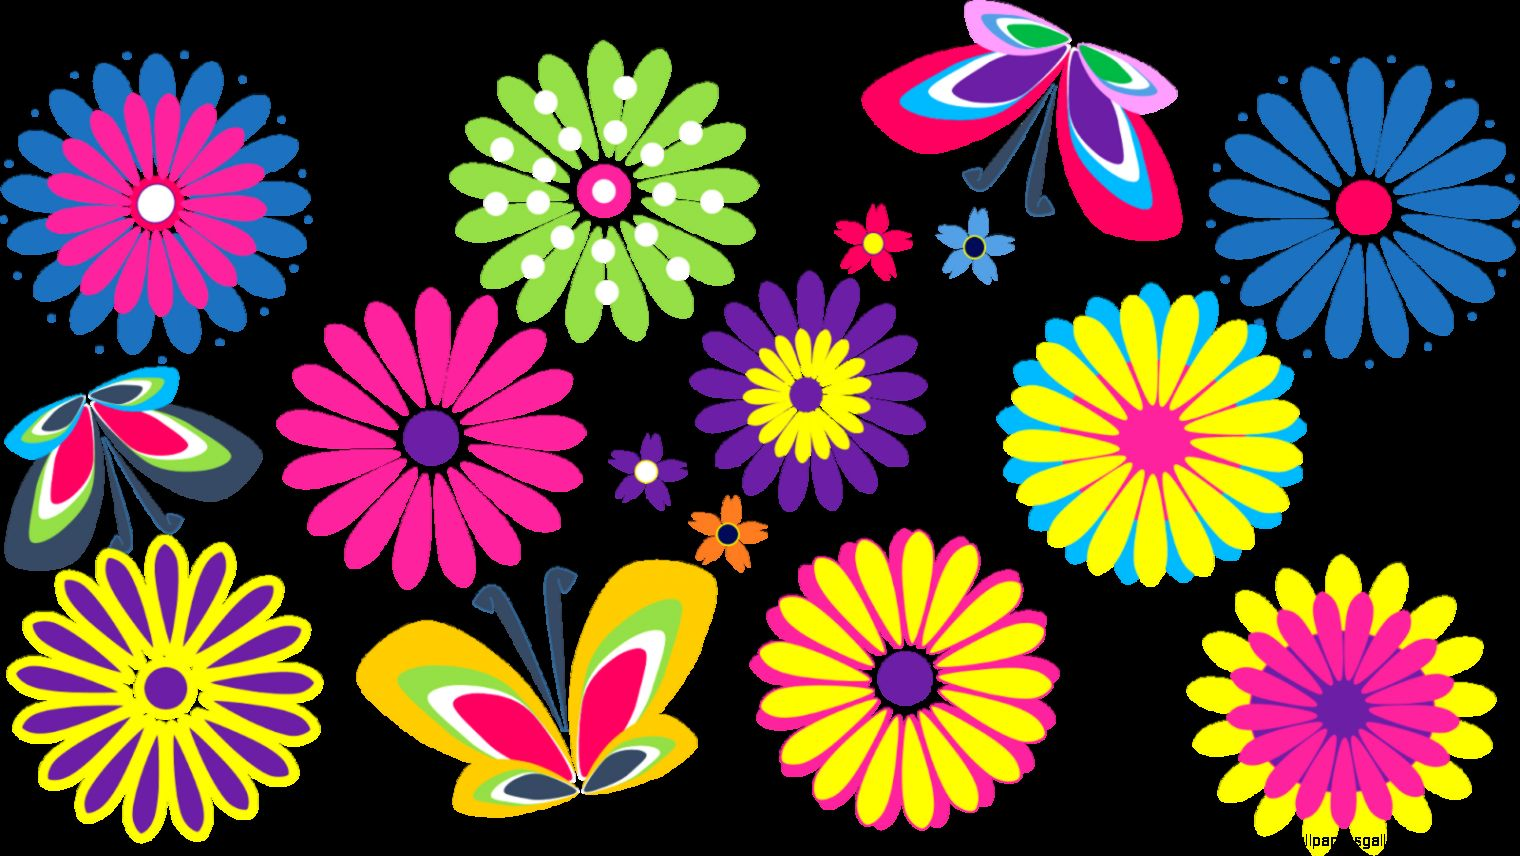 Free clipart images of flowers flower clip art pictures image 1 2